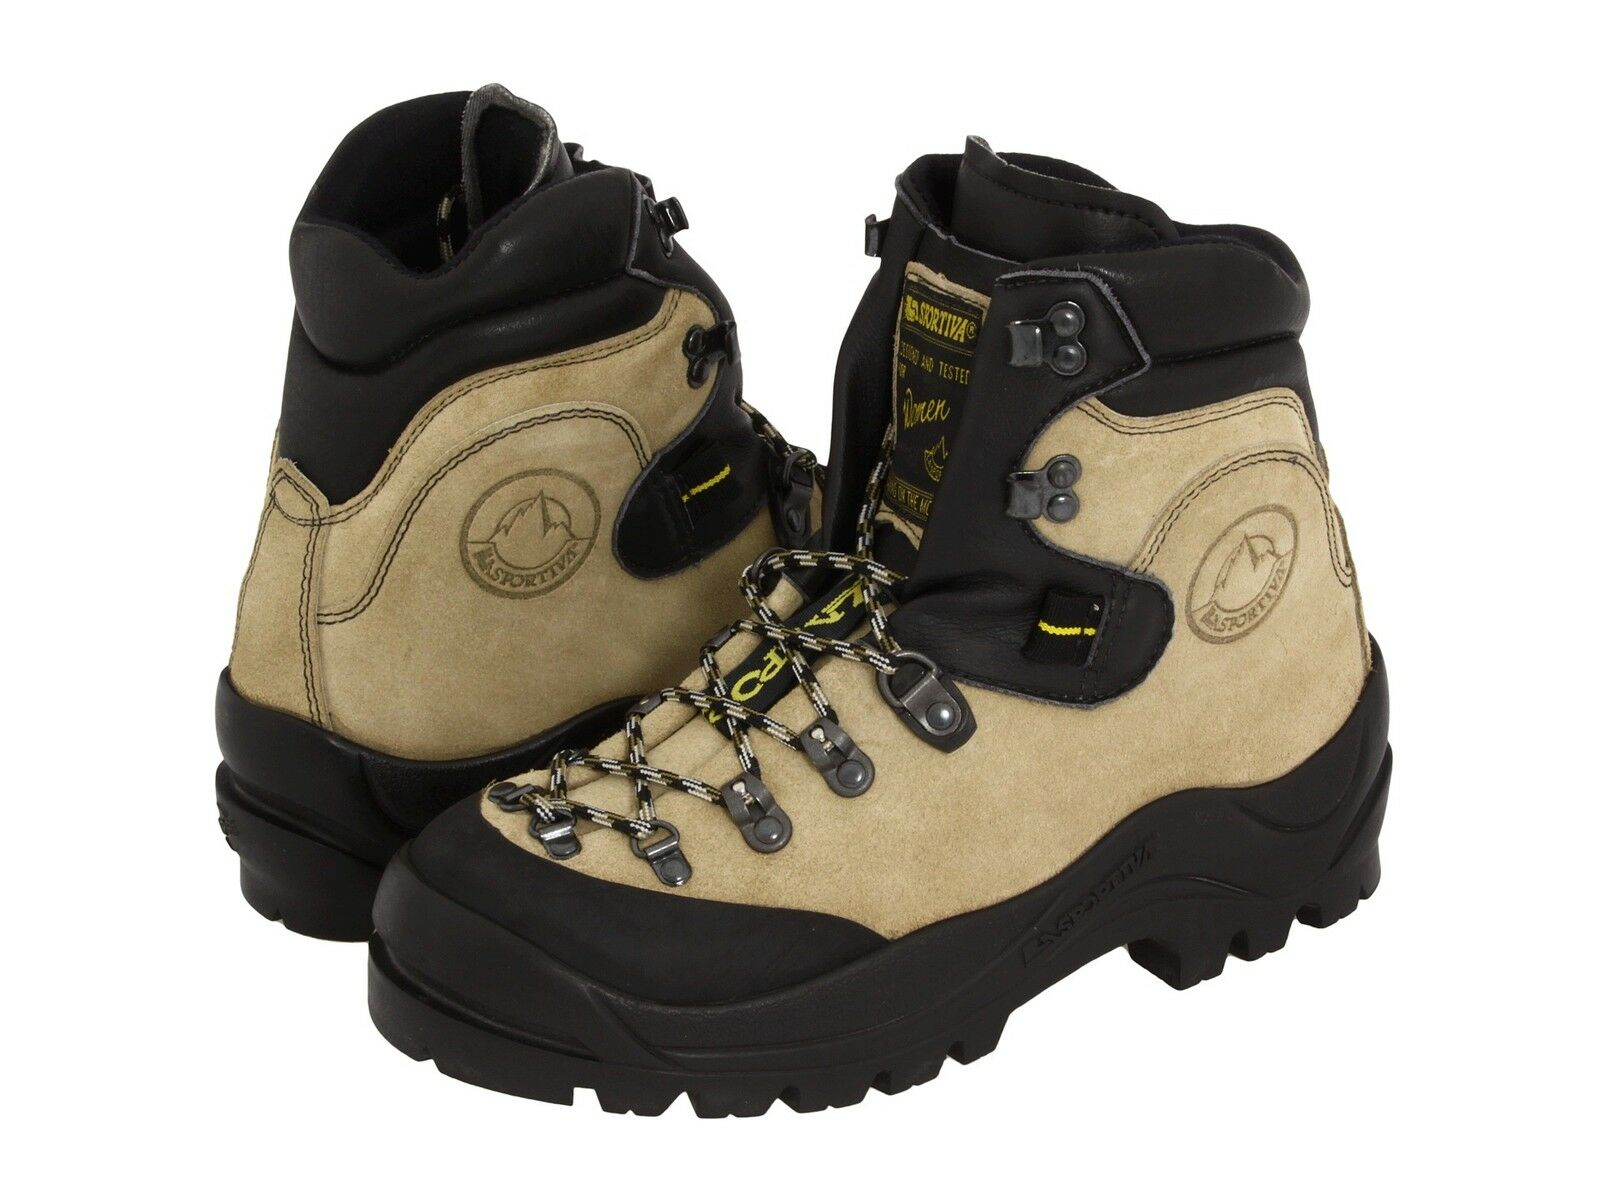 La Sportiva Men's Makalu Mountaineering Boot - TAN - 44 (US 10.5+)